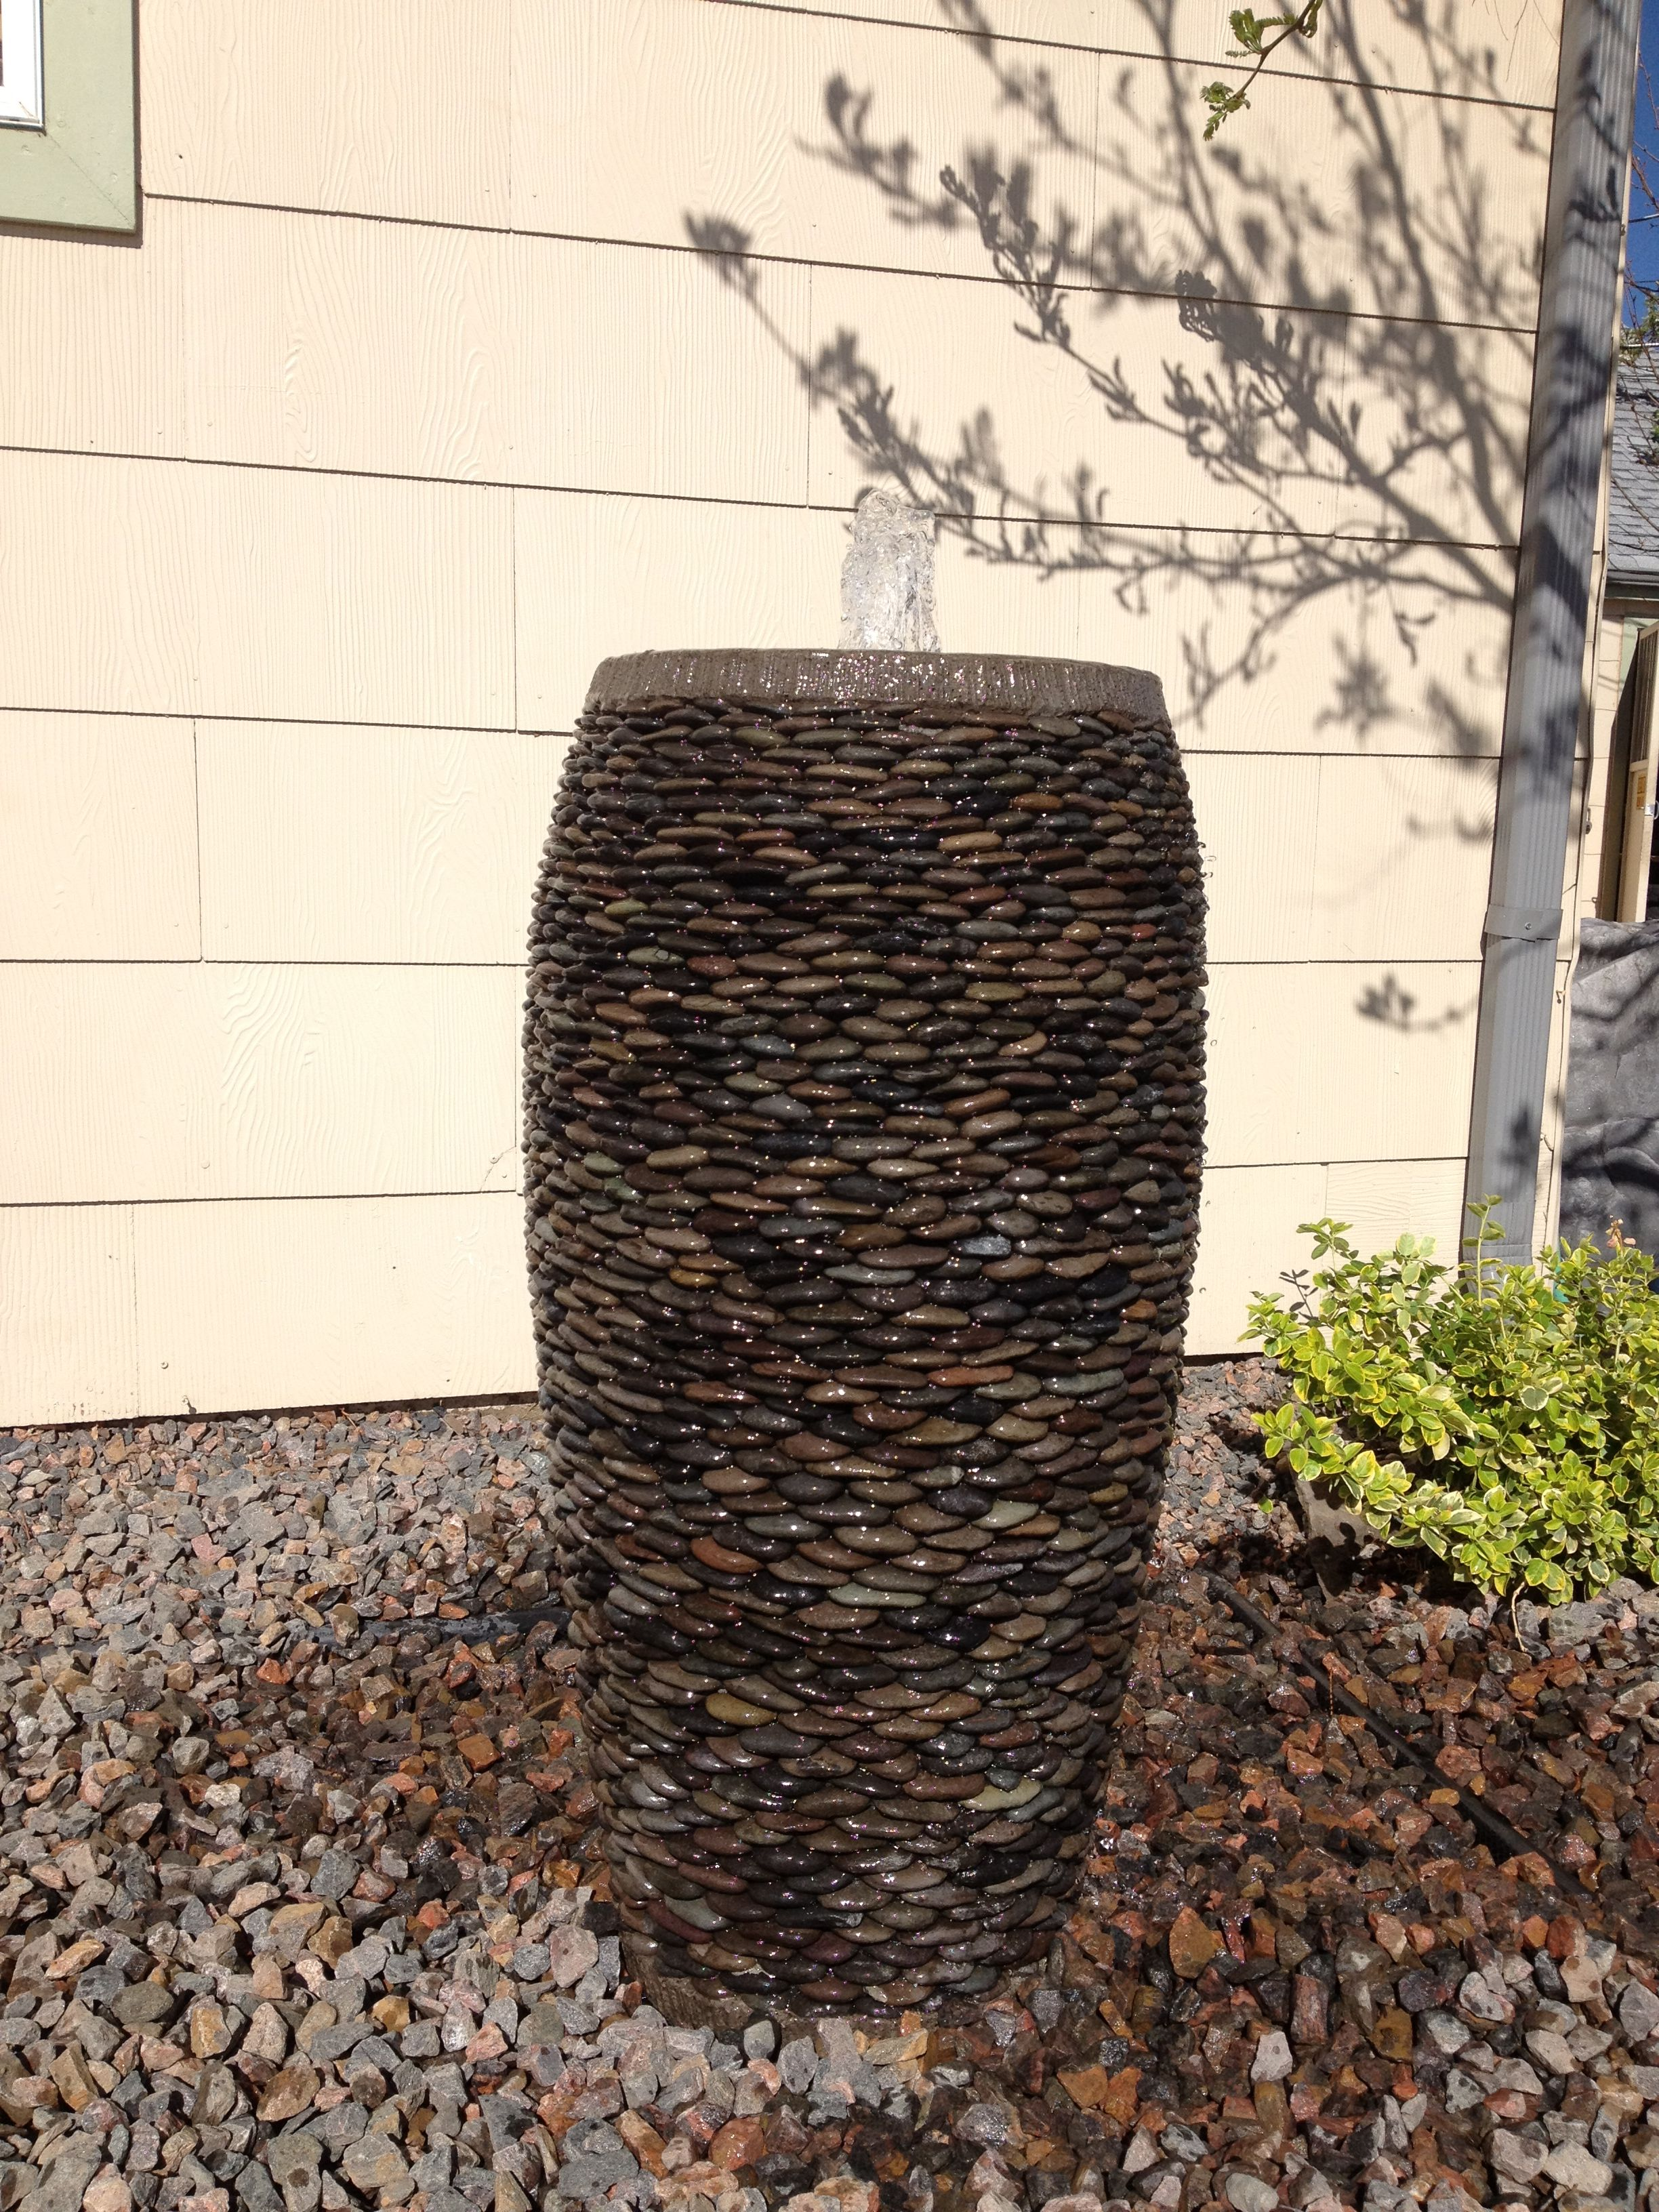 Pebble Pots Disearing Fountains Water Runs Down The Side Creating Great Sound And Amazing Effects